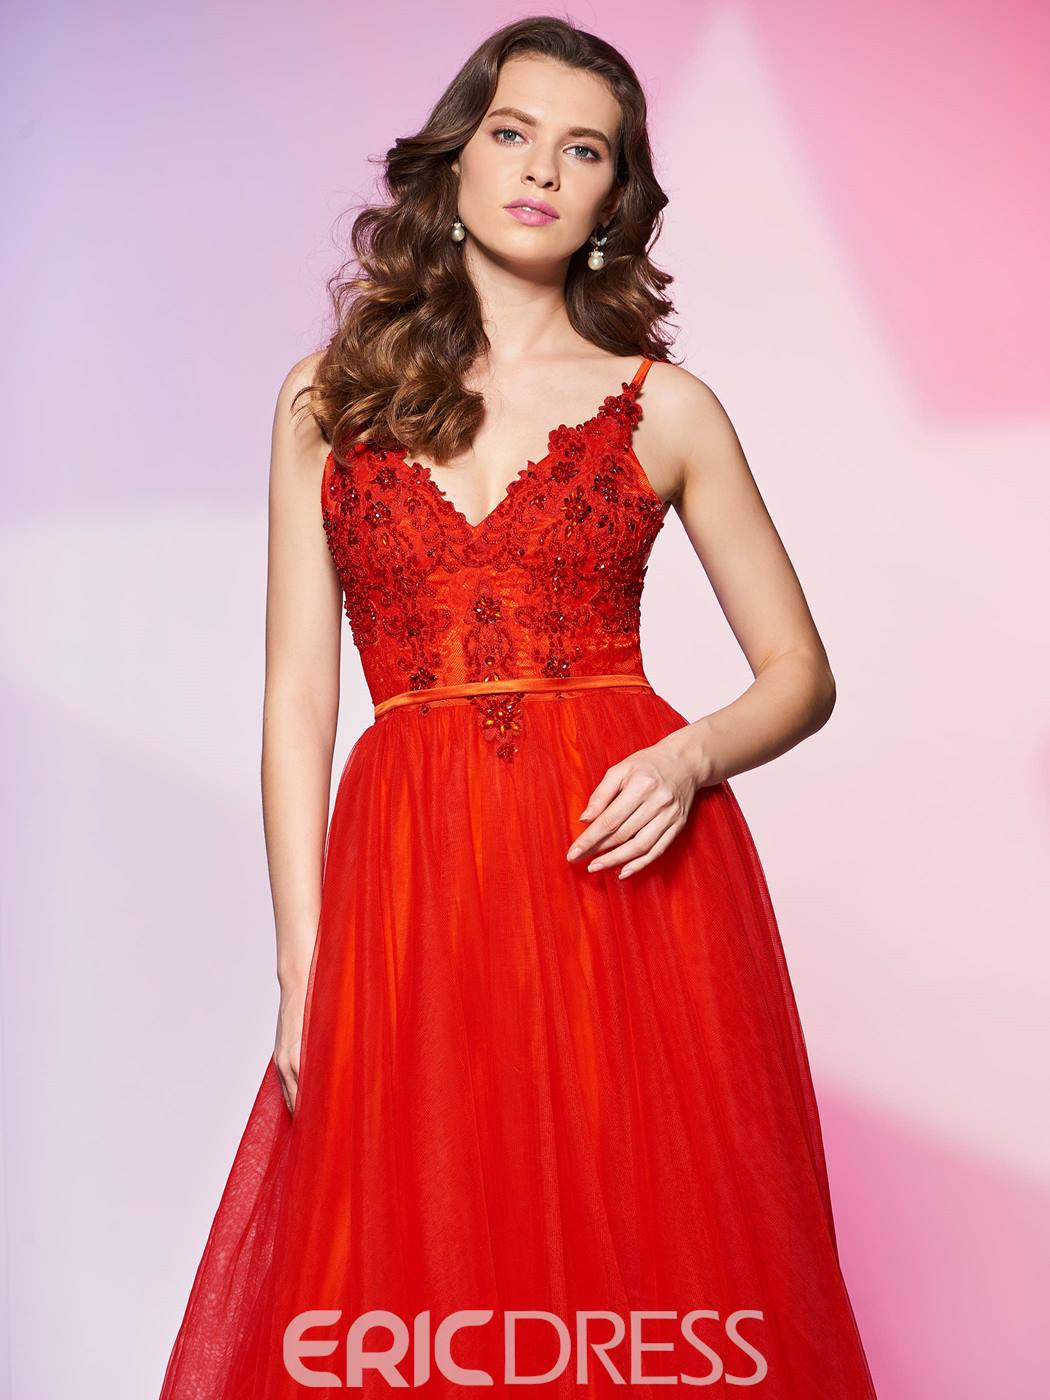 Ericdress A Line Spaghetti Straps Applique Beaded Prom Dress